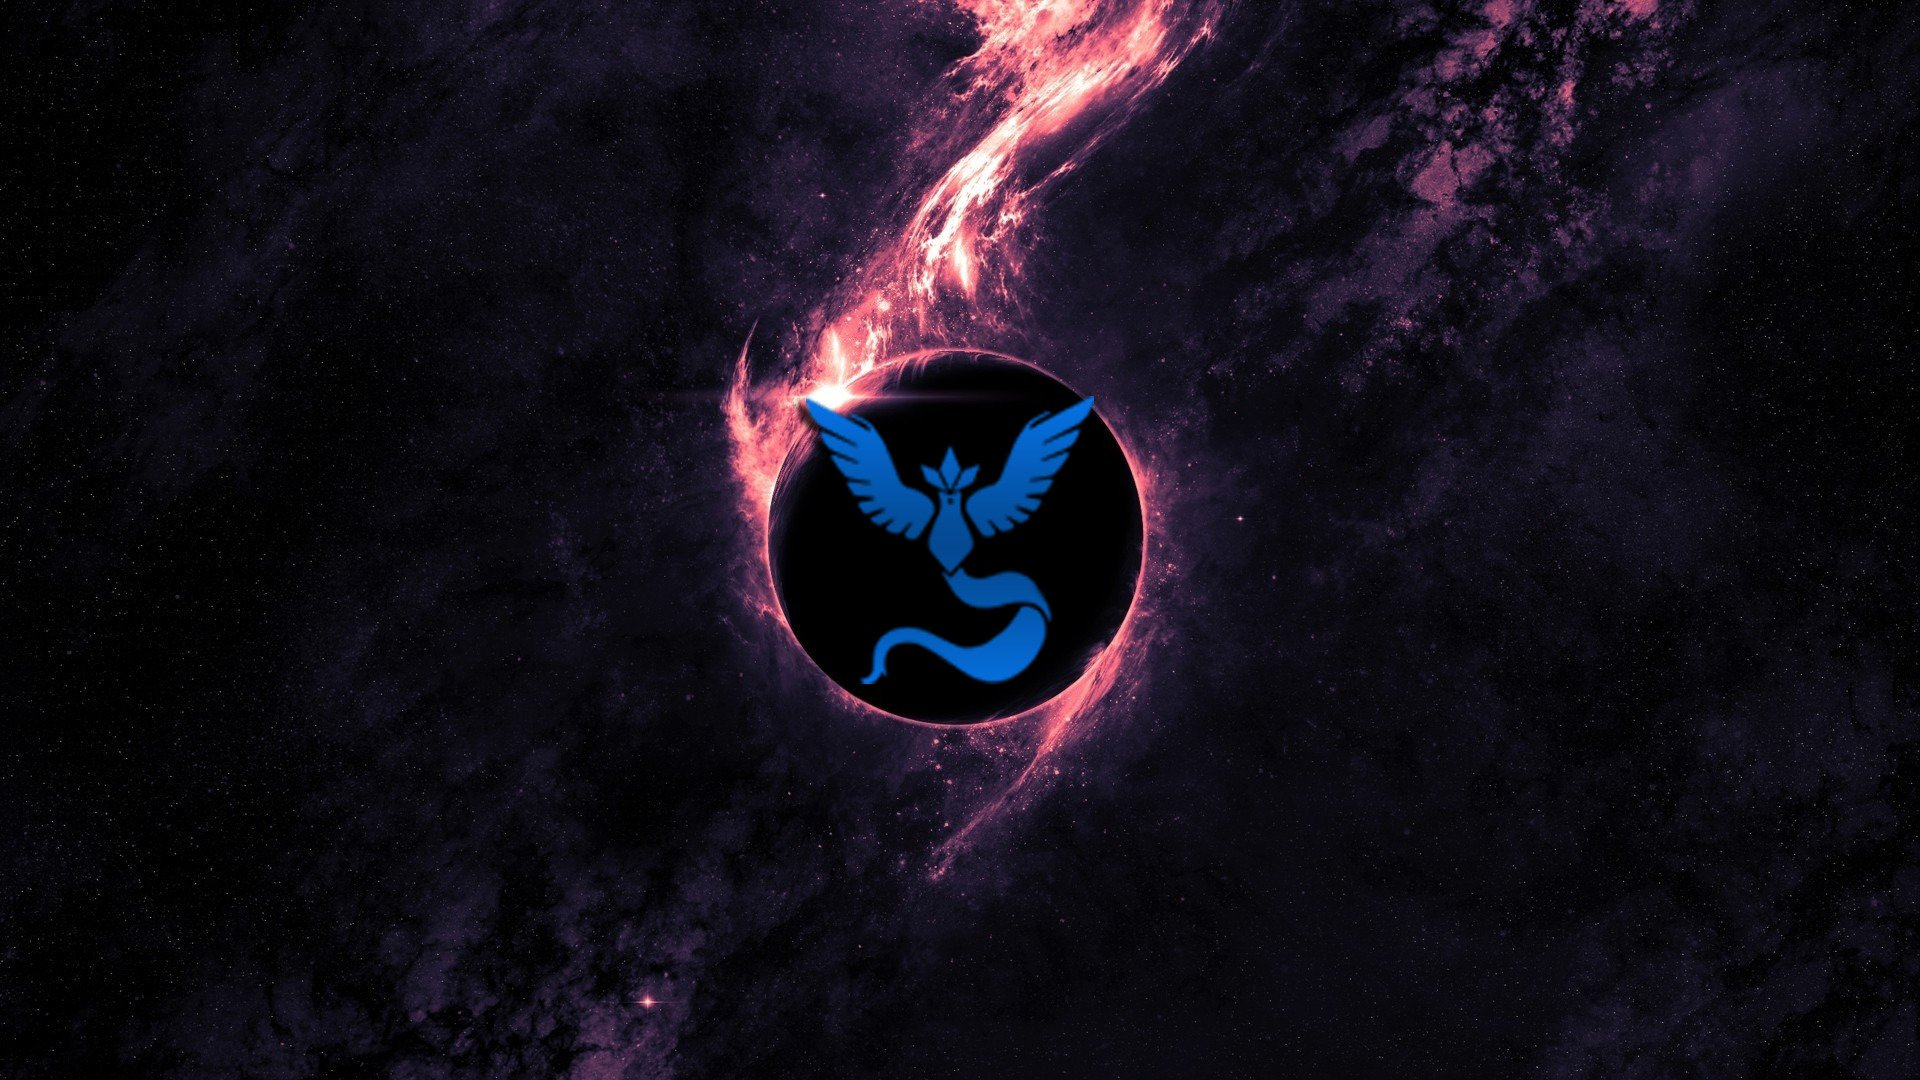 Pokemon Go Team Mystic Space Blue Hd Wallpapers Desktop And